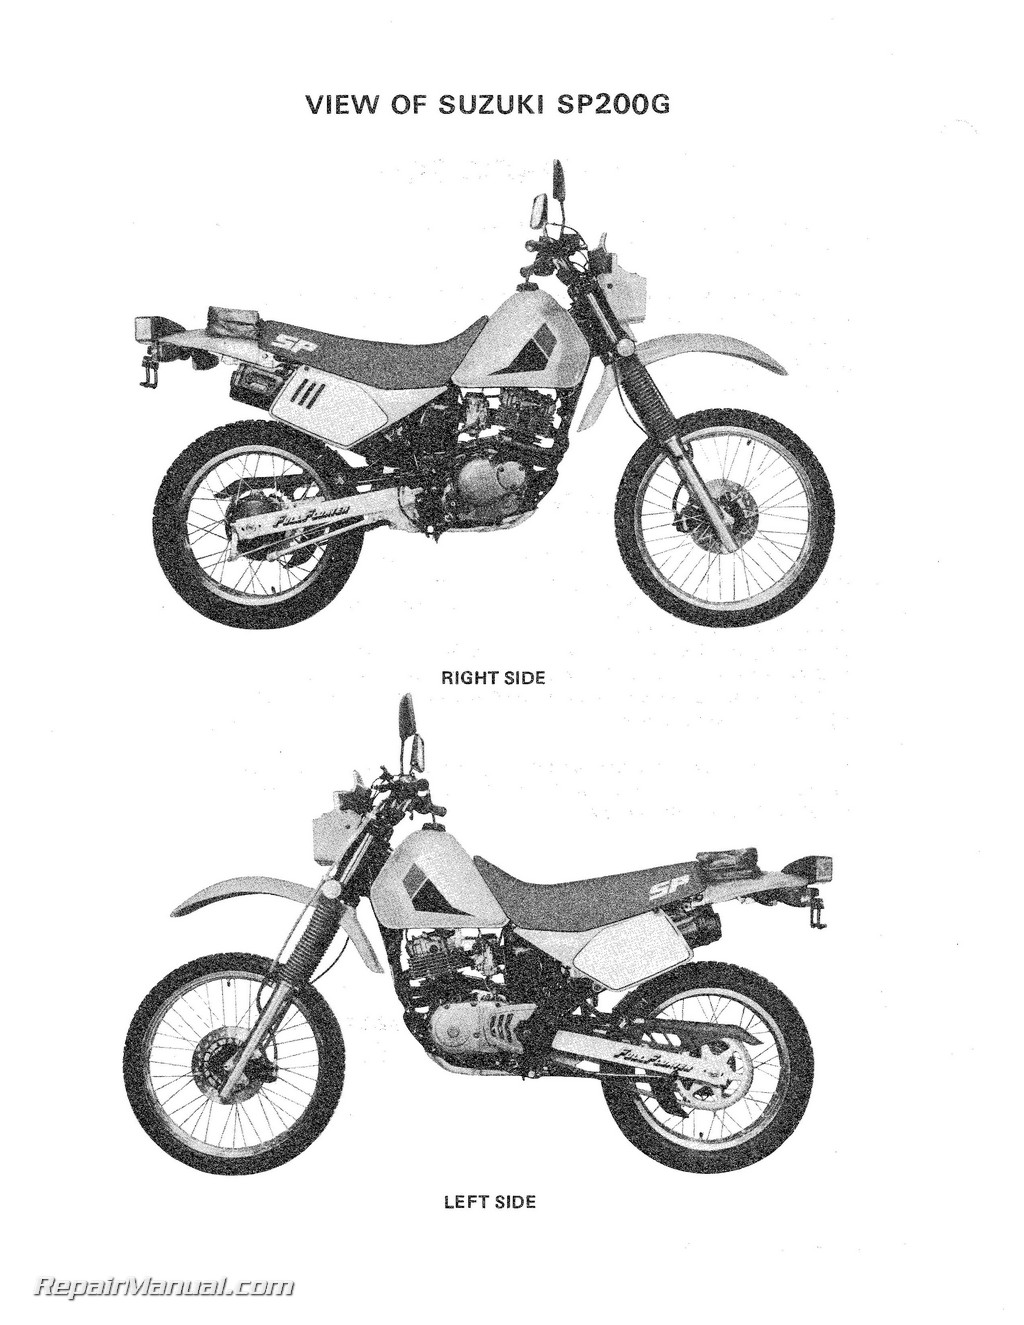 Suzuki Rv50 Motorcycle Service Manual Auto Electrical Wiring Diagram Dr250 1986 Sp200g Dr200